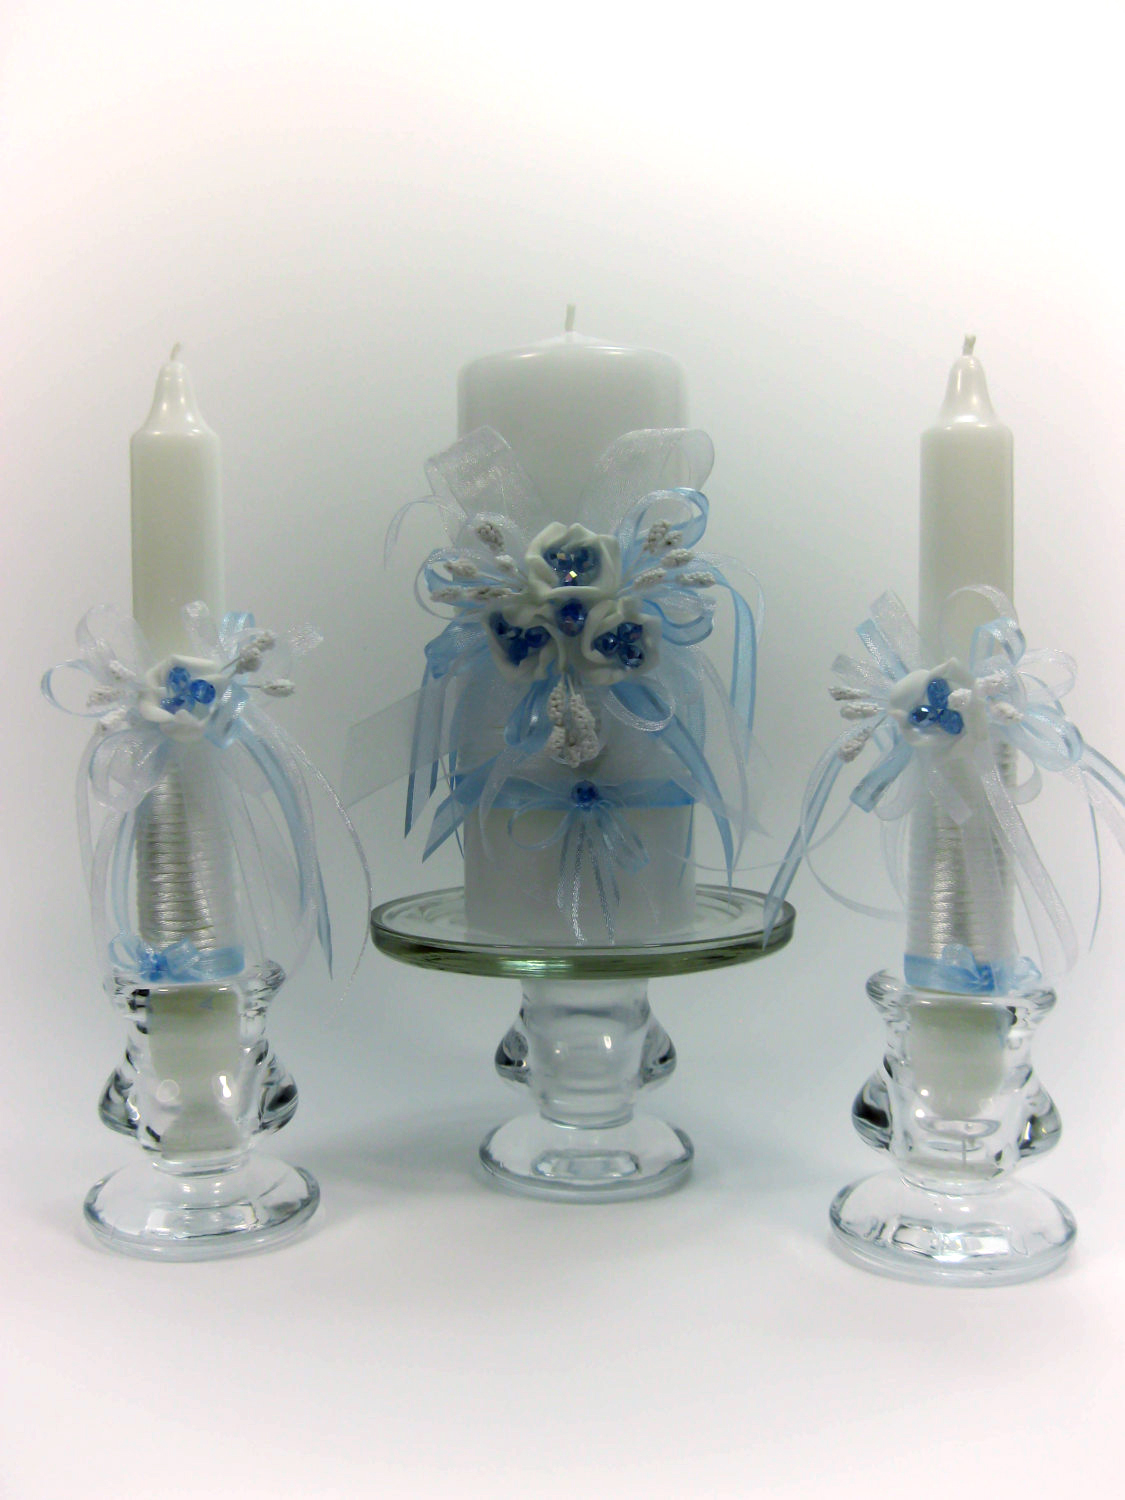 handmade wedding unity candles something blue roses pillar candle taper candles personalized candles unity candle set